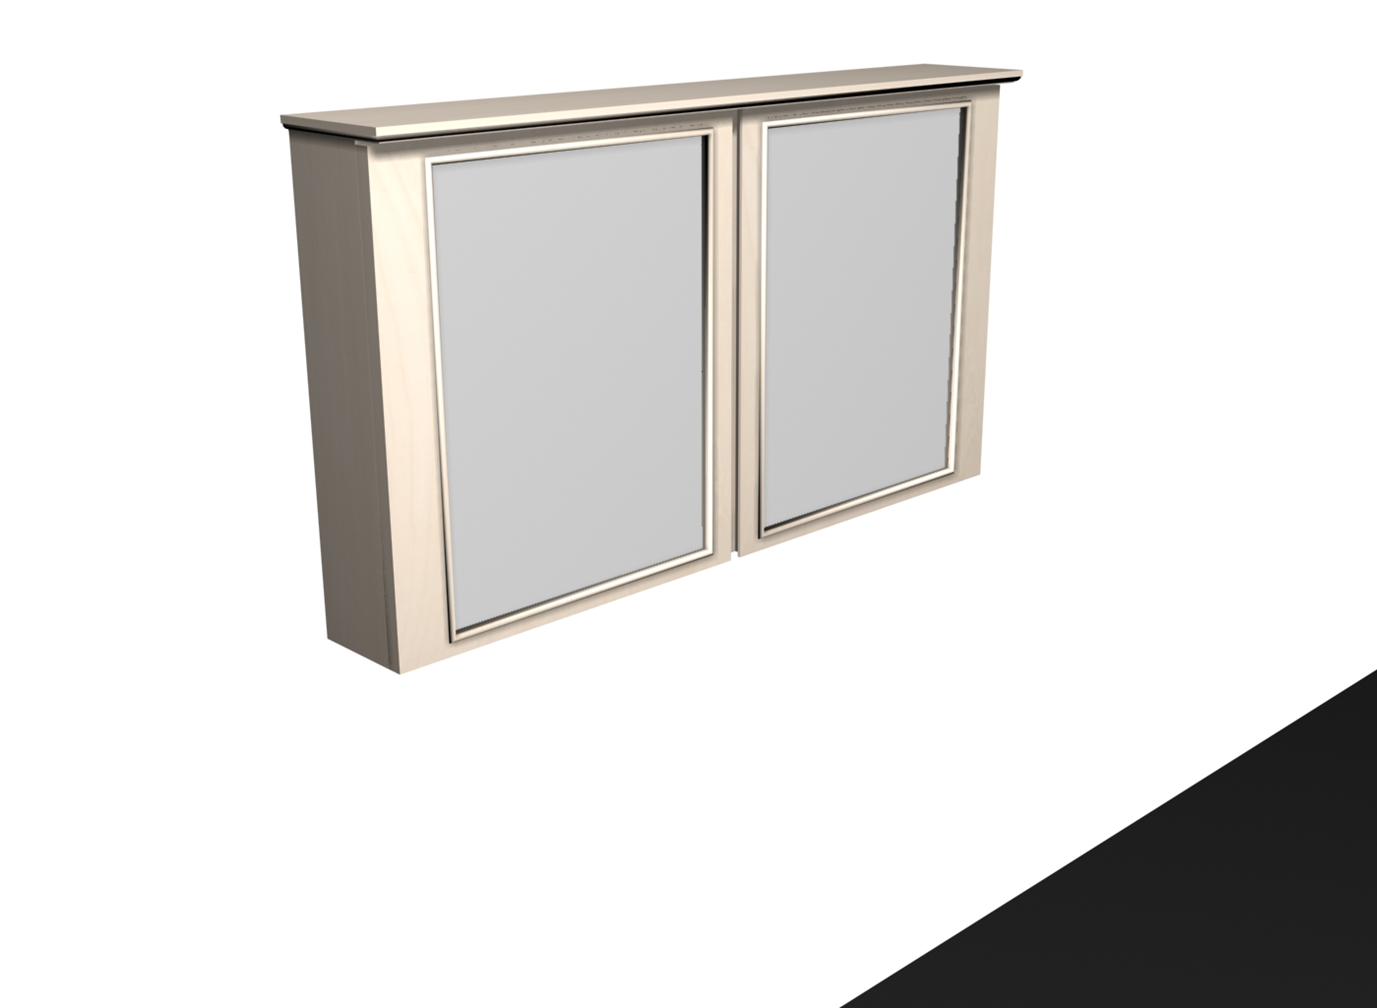 Mindi Wooden Mirror Cabinet Retro Grey Finish 2 Glass Layer. Available With  Or Without Build In LED Light. Easy Mounting Adjustable Hanging System